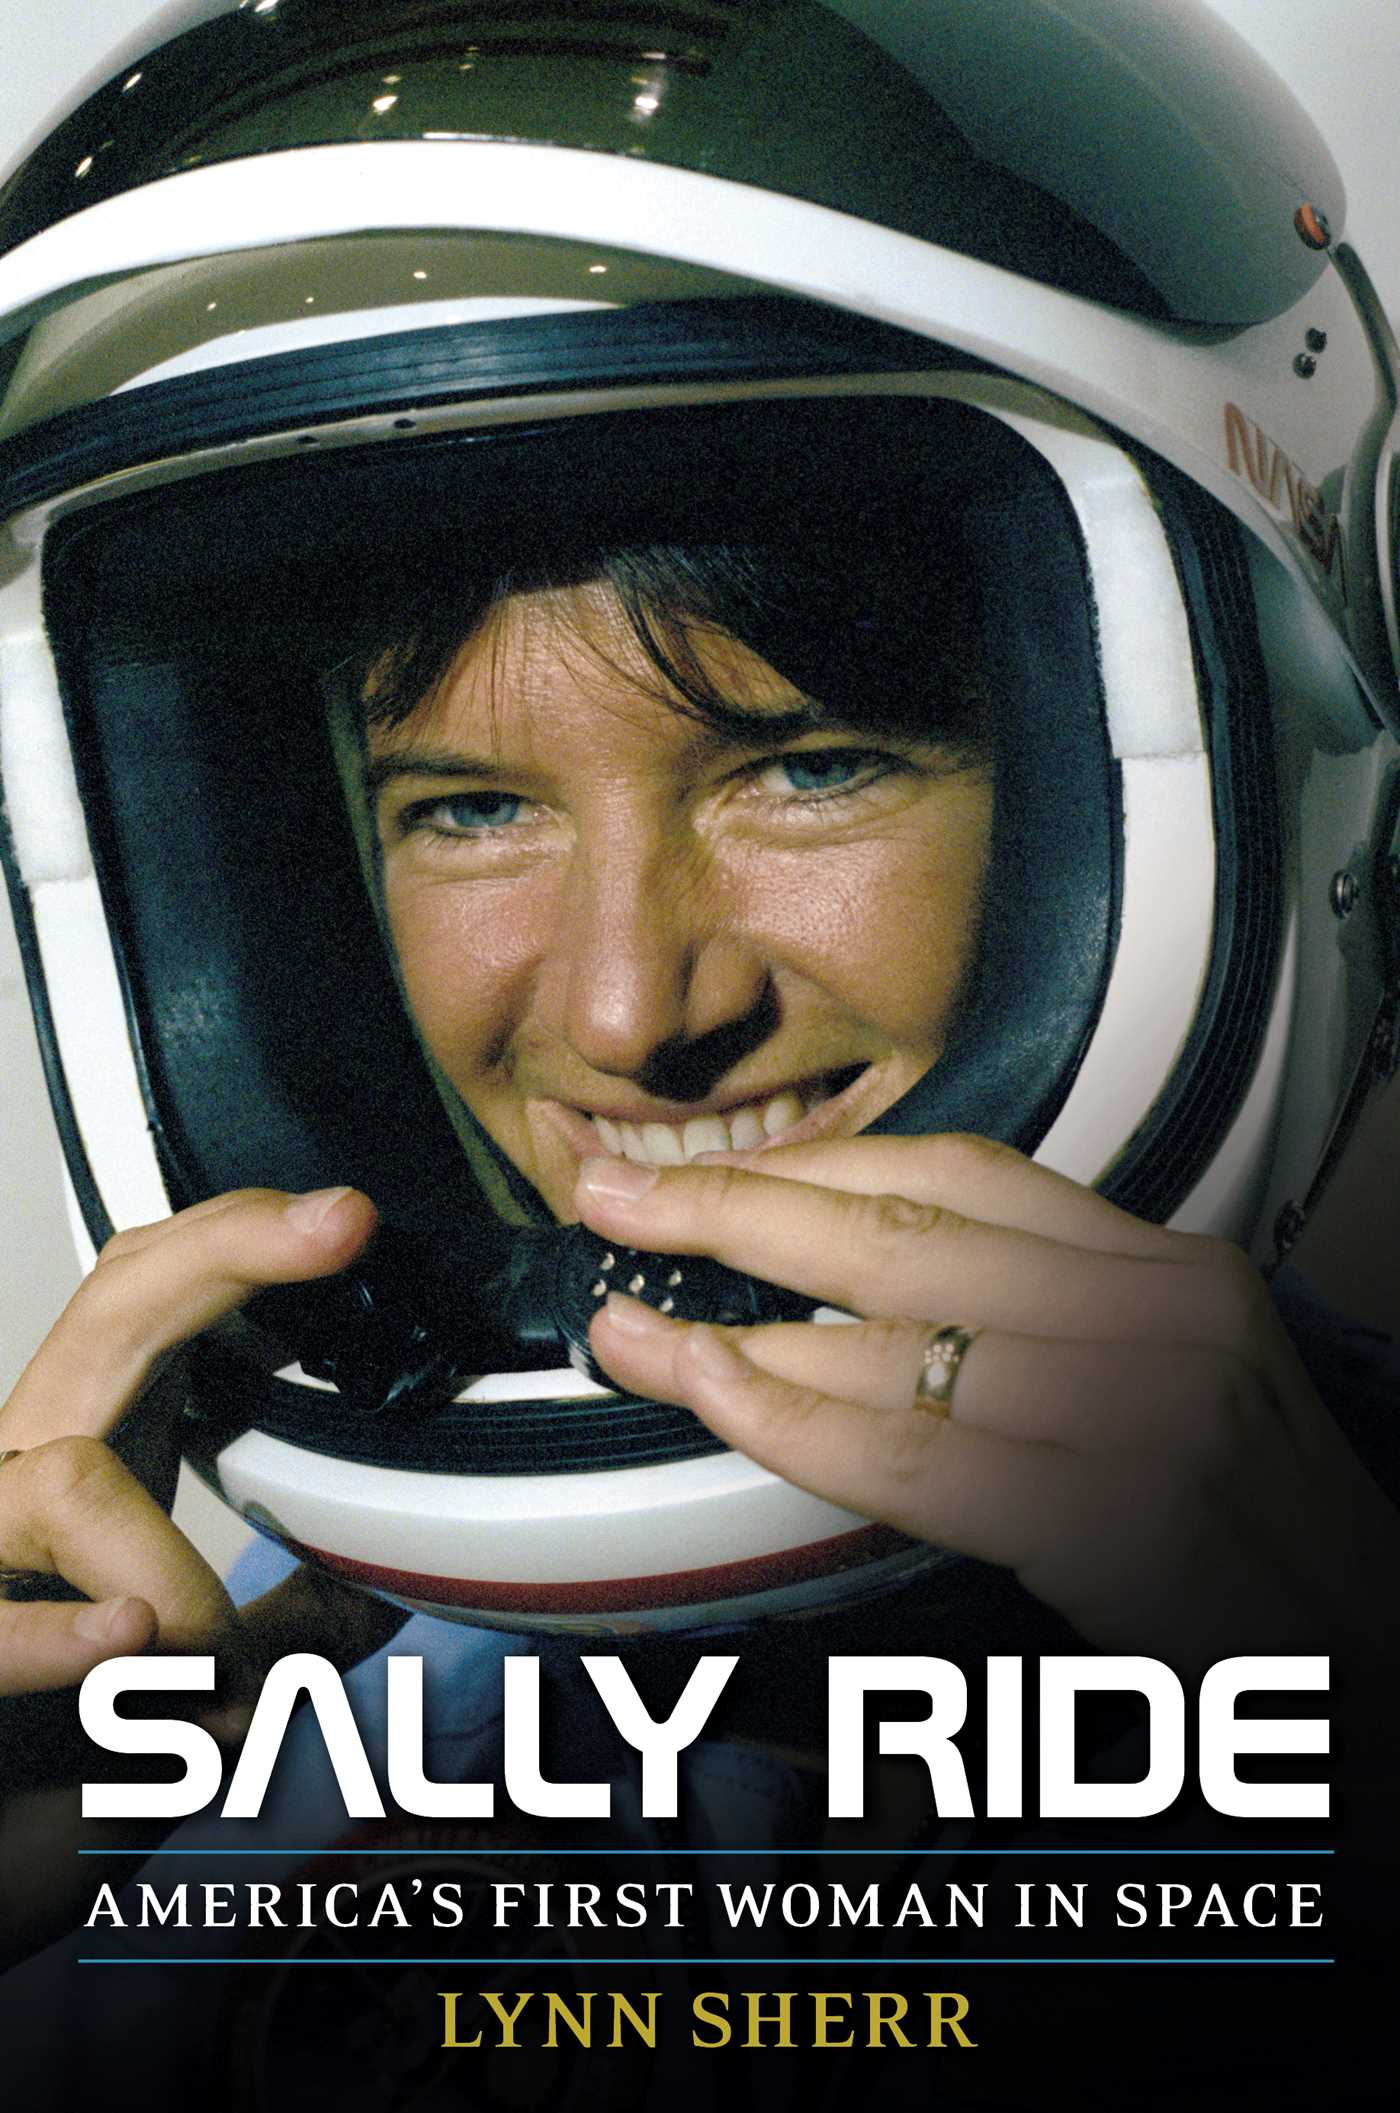 Sally ride 9781476725765 hr